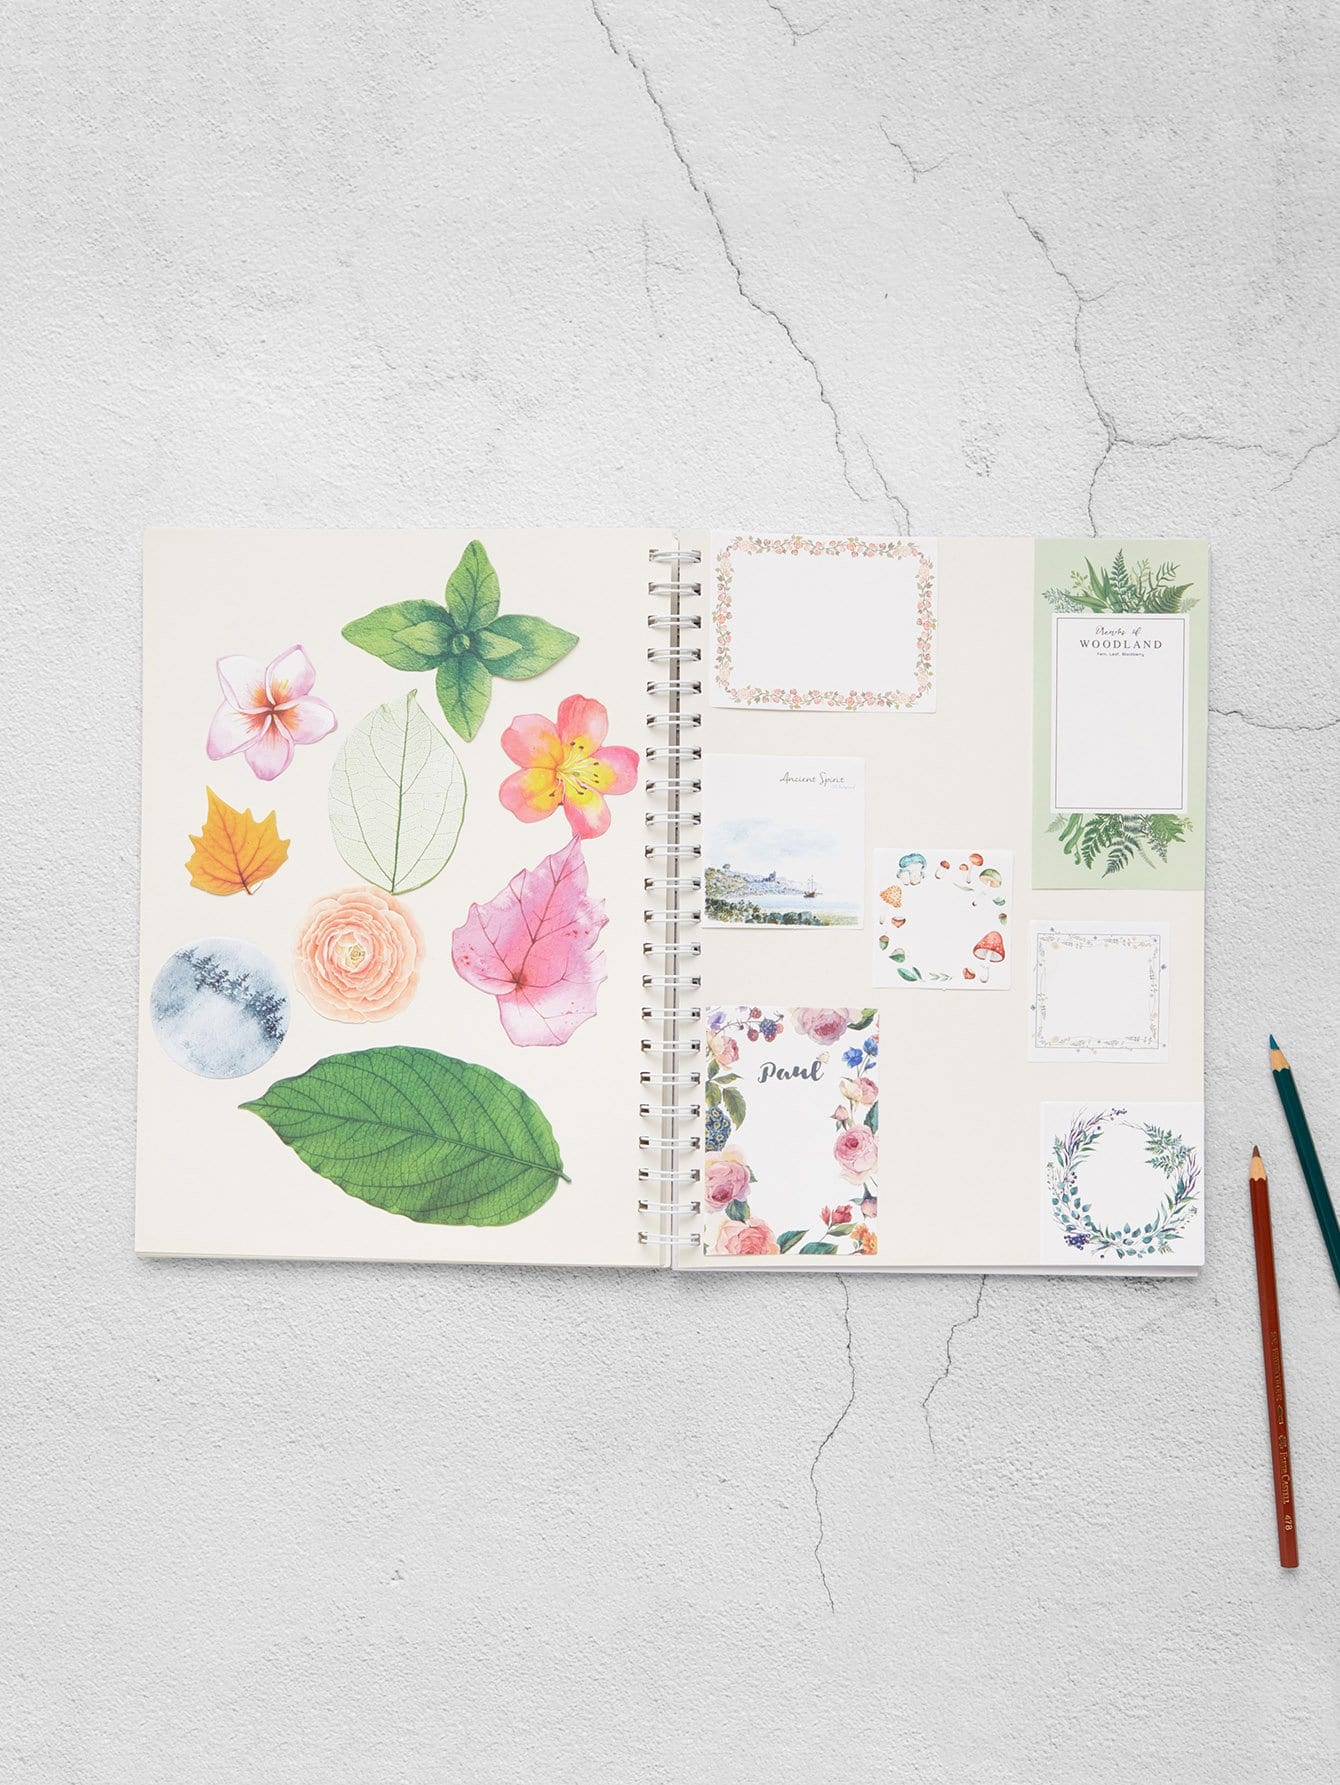 Flower Memo Pads 32 Sheets 200 sheets 2 boxes 2 sets vintage kraft paper cards notes filofax memo pads office supplies school office stationery papelaria